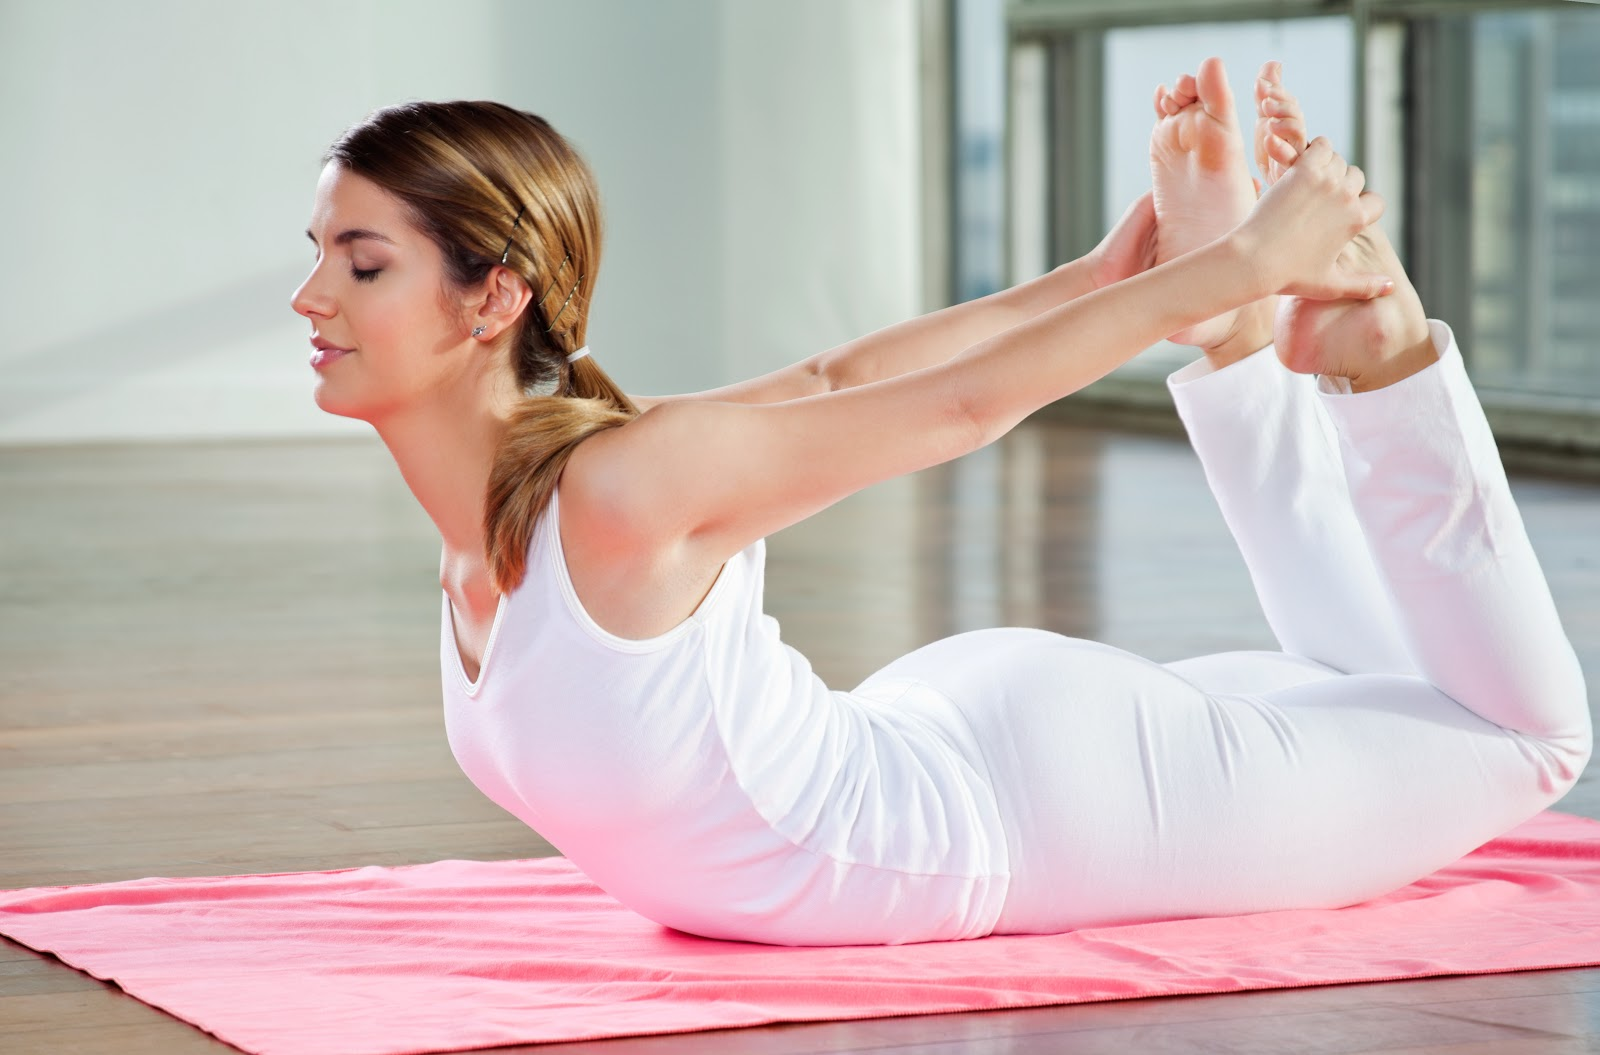 The Bow Pose improves posture and spinal flexibility.